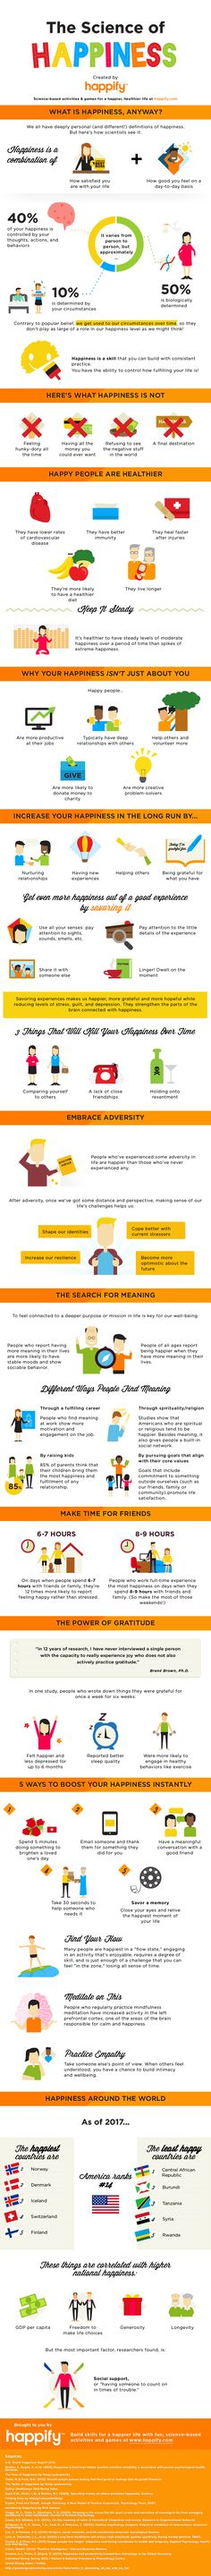 happify happiness infographic